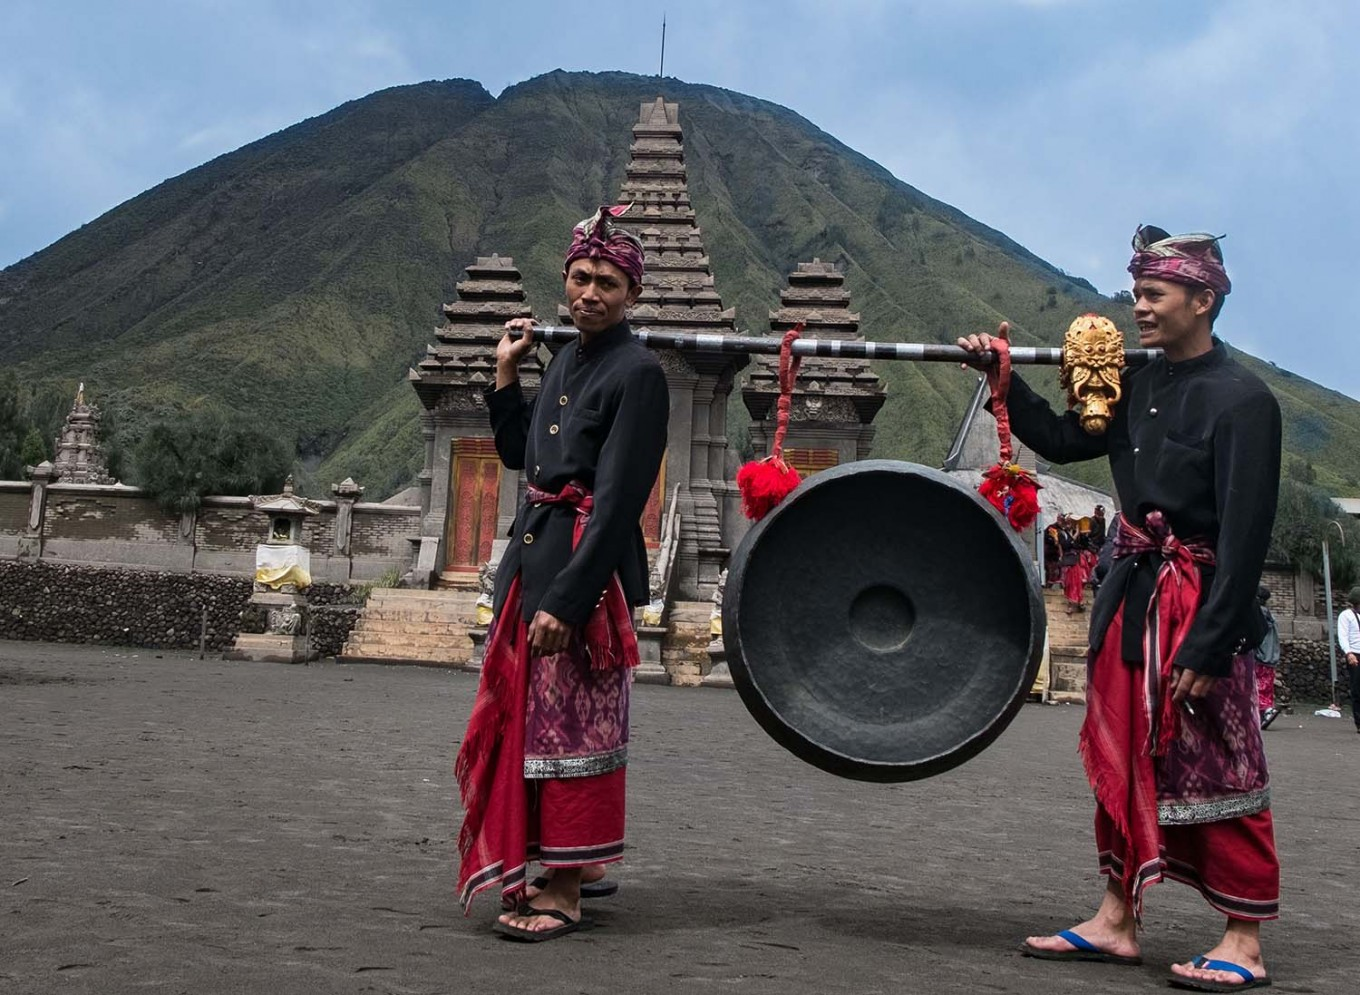 Two men carry a gong for the wedding ceremony at Luhur Poten temple, Mount Bromo. JP/Tarko Sudiarno